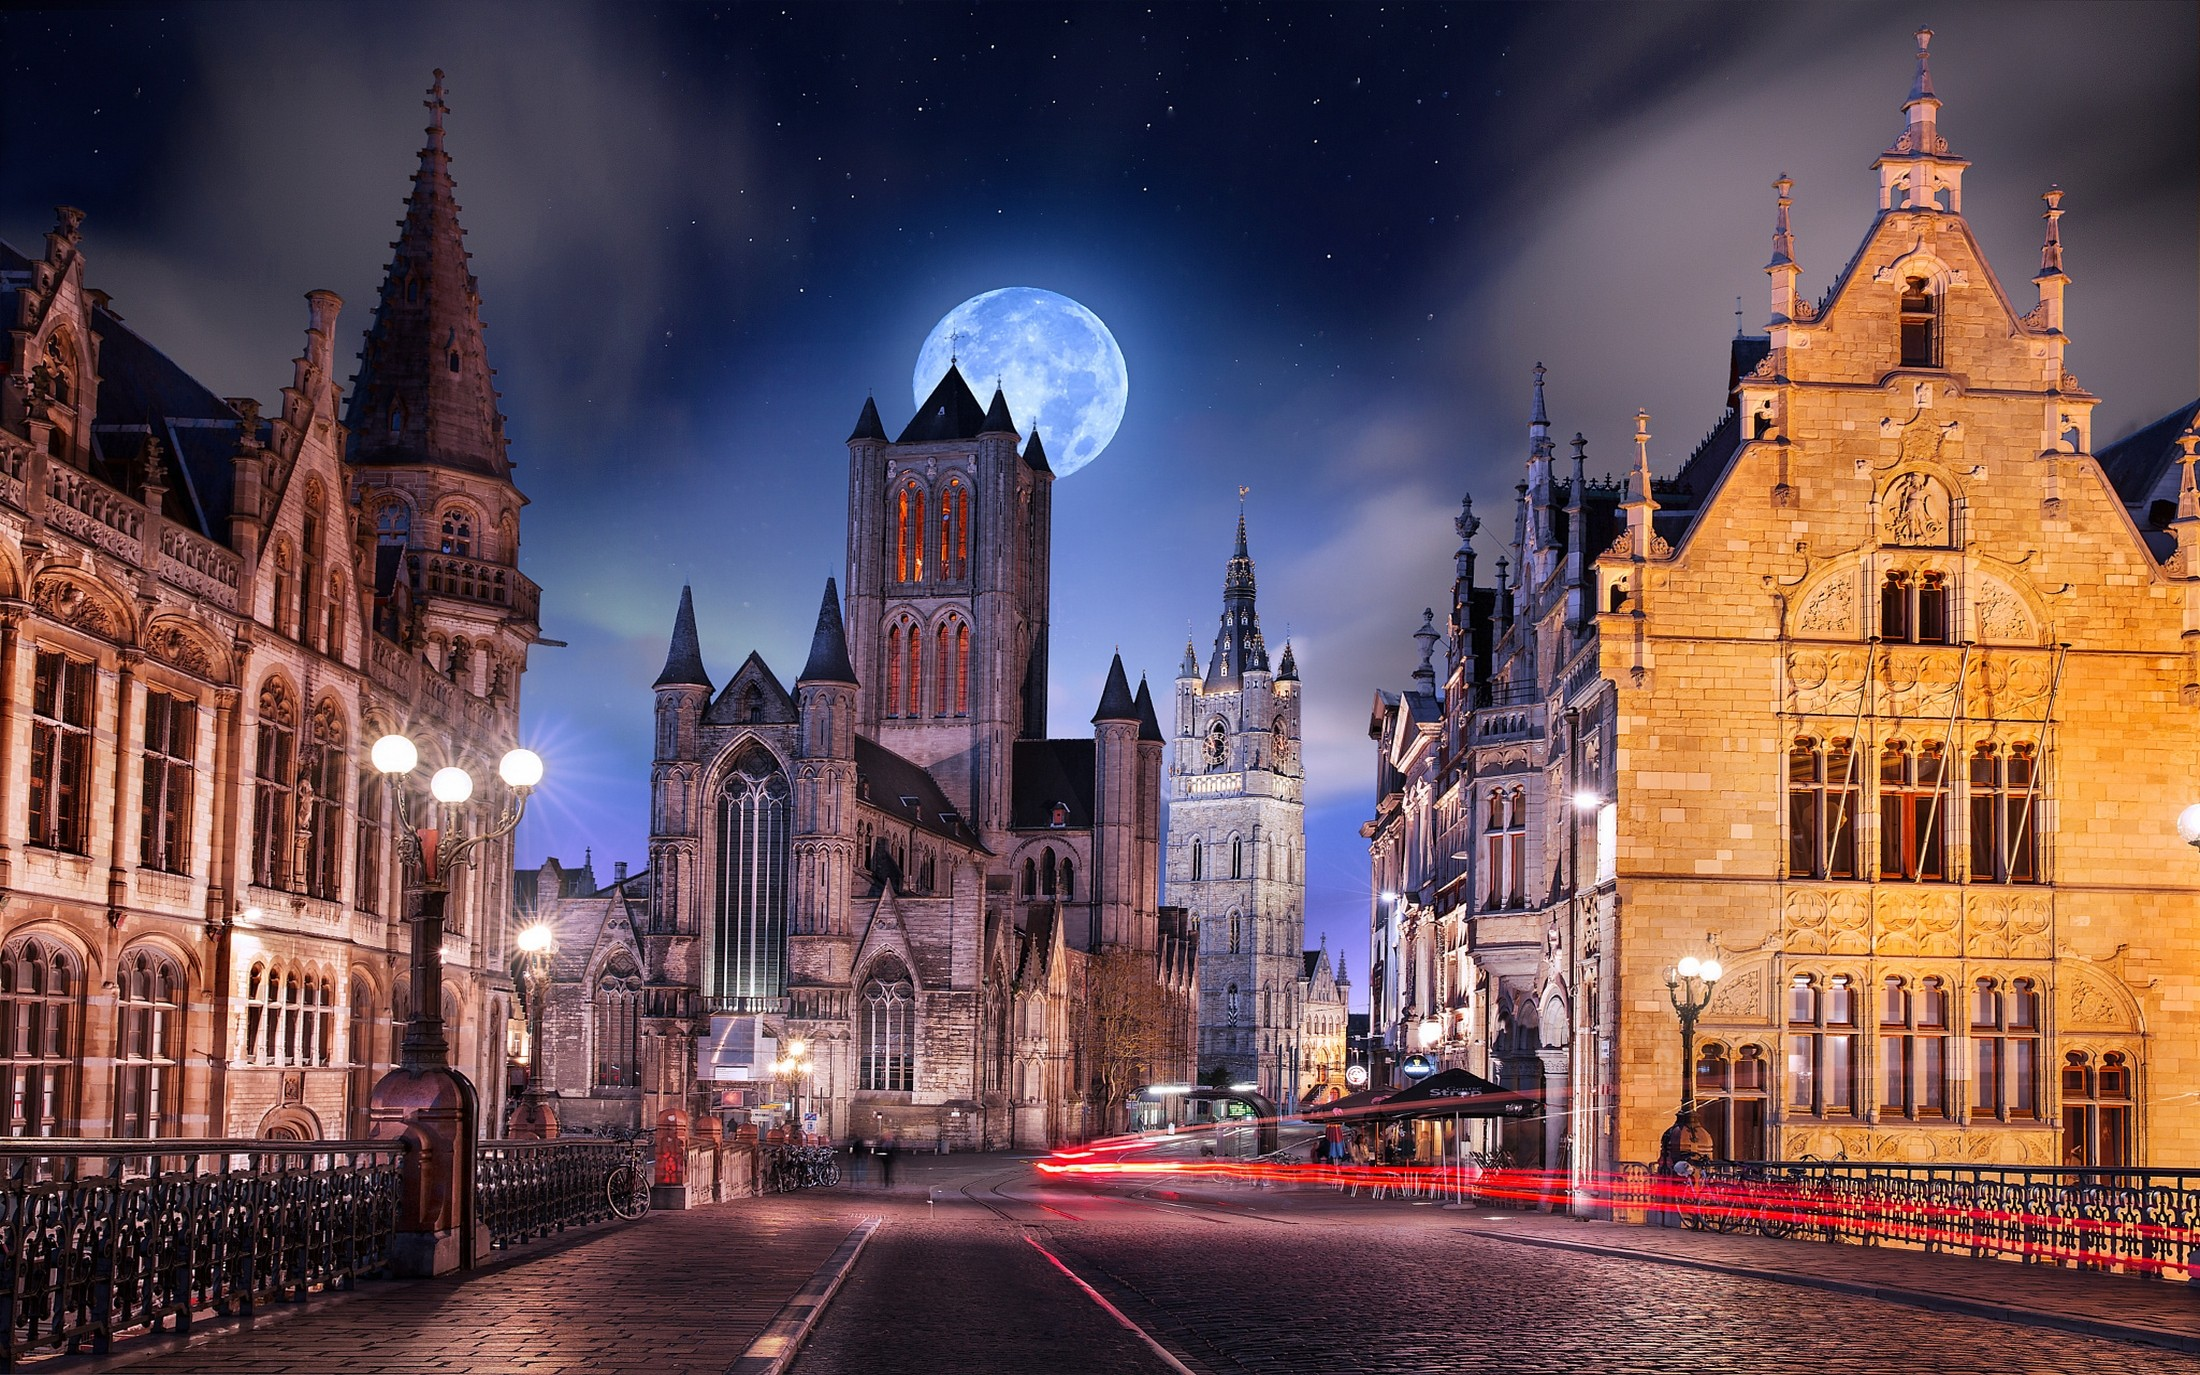 Gothic architecture hd photography 4k wallpapers images for Architecture 4k wallpaper